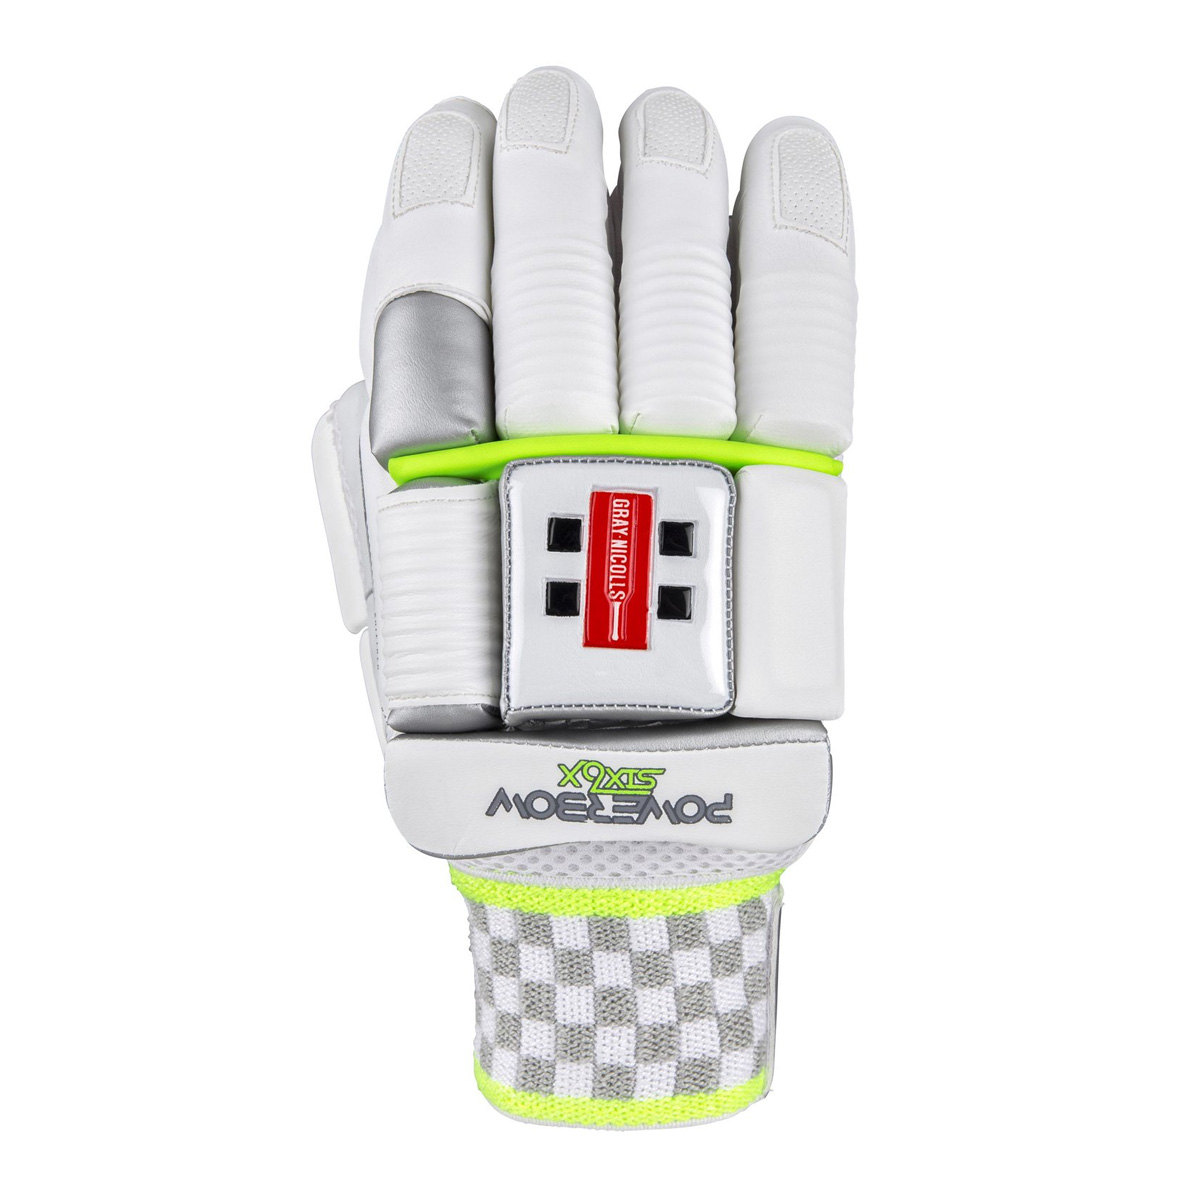 An image of Gray-Nicolls Powerbow6X 700 Batting Cricket Gloves - M LH